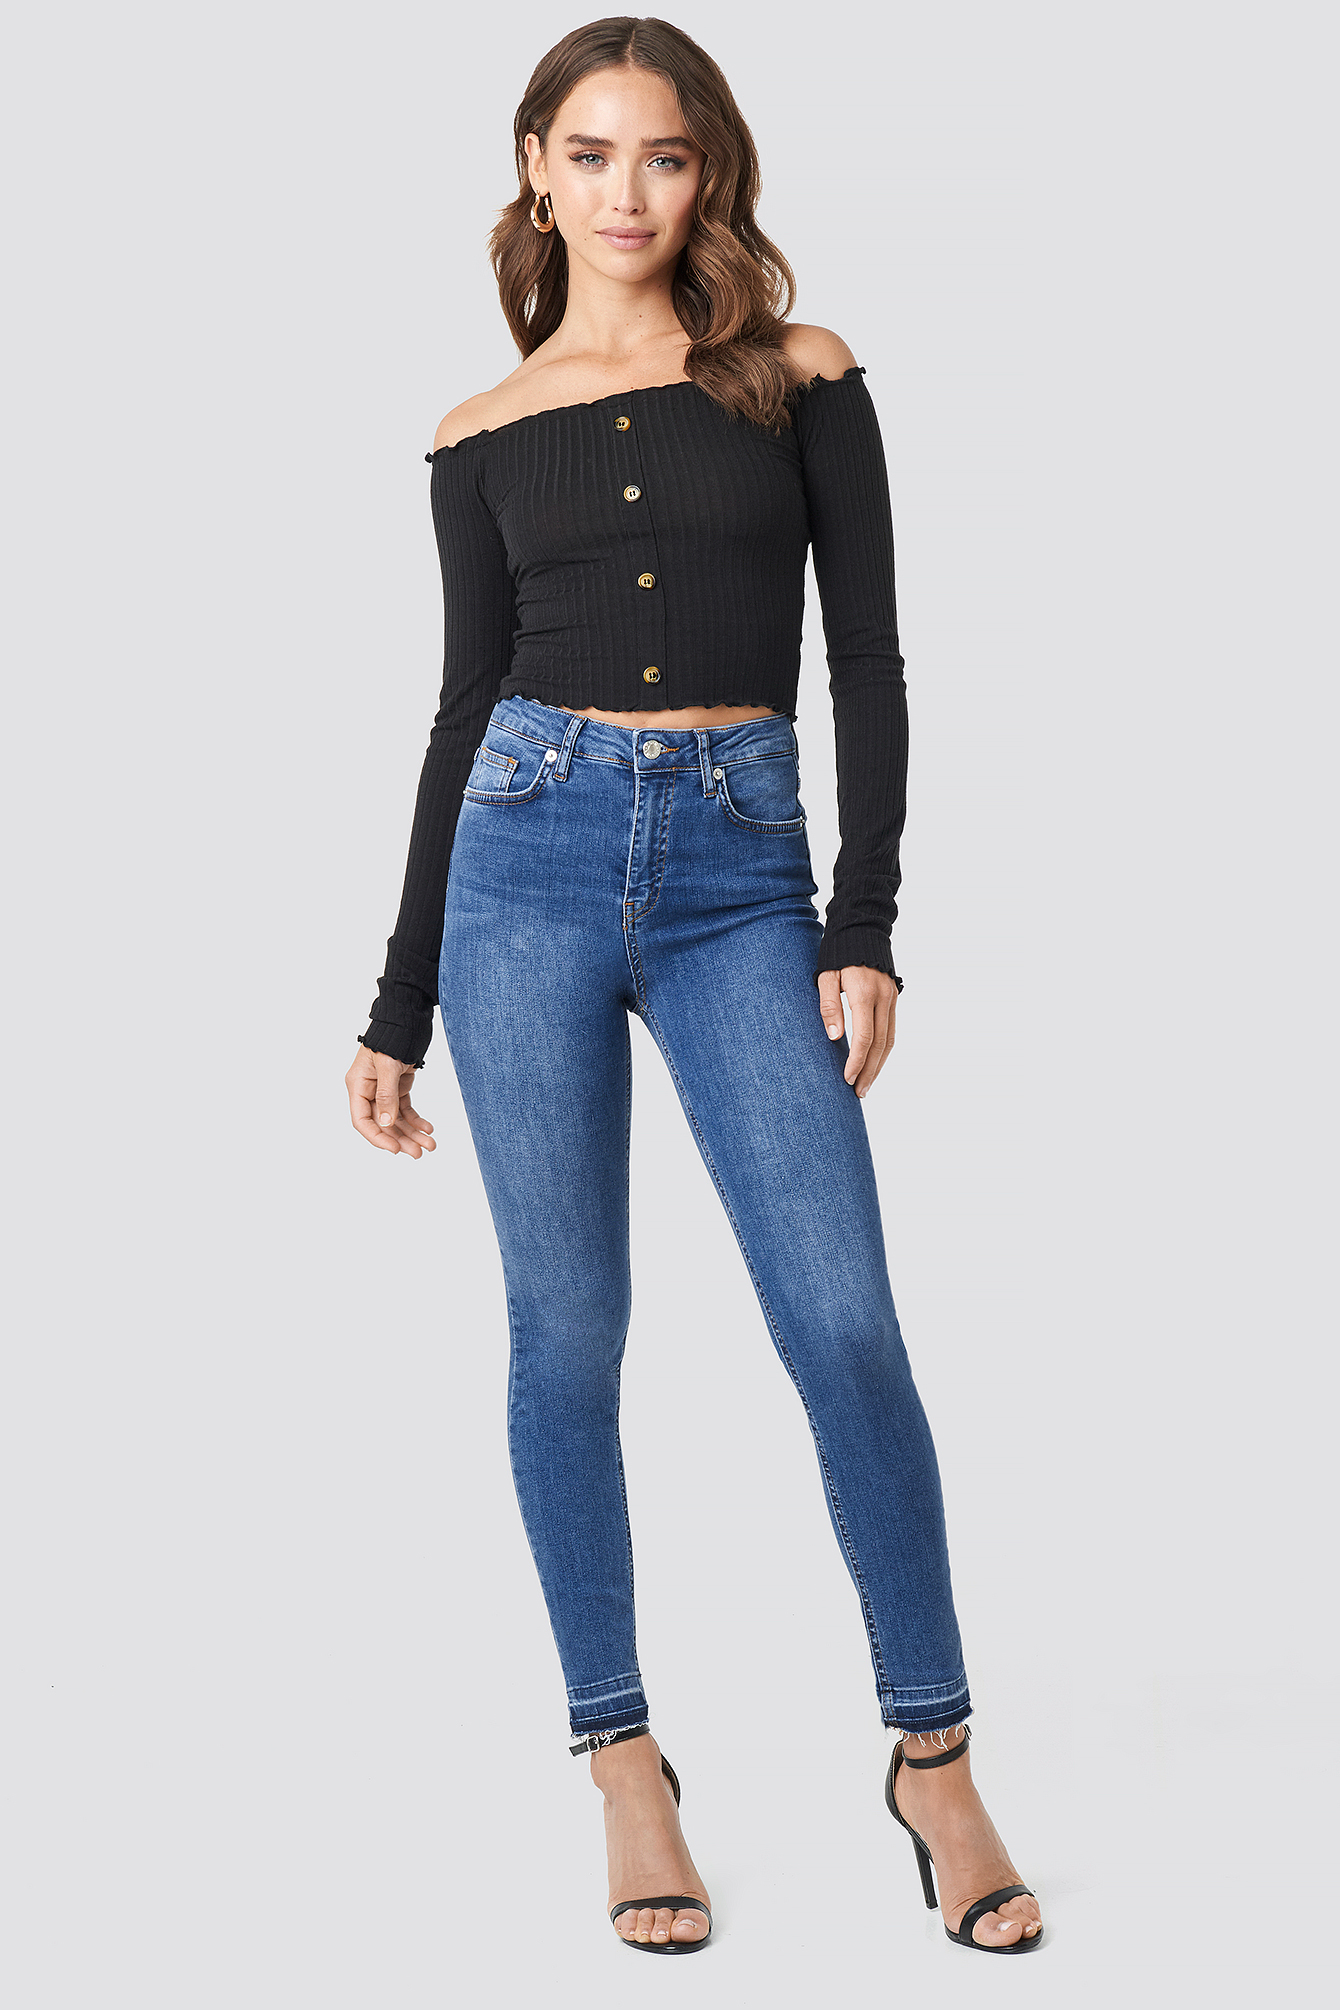 Denise Bobe Button Detail Ribbed Top NA-KD.COM